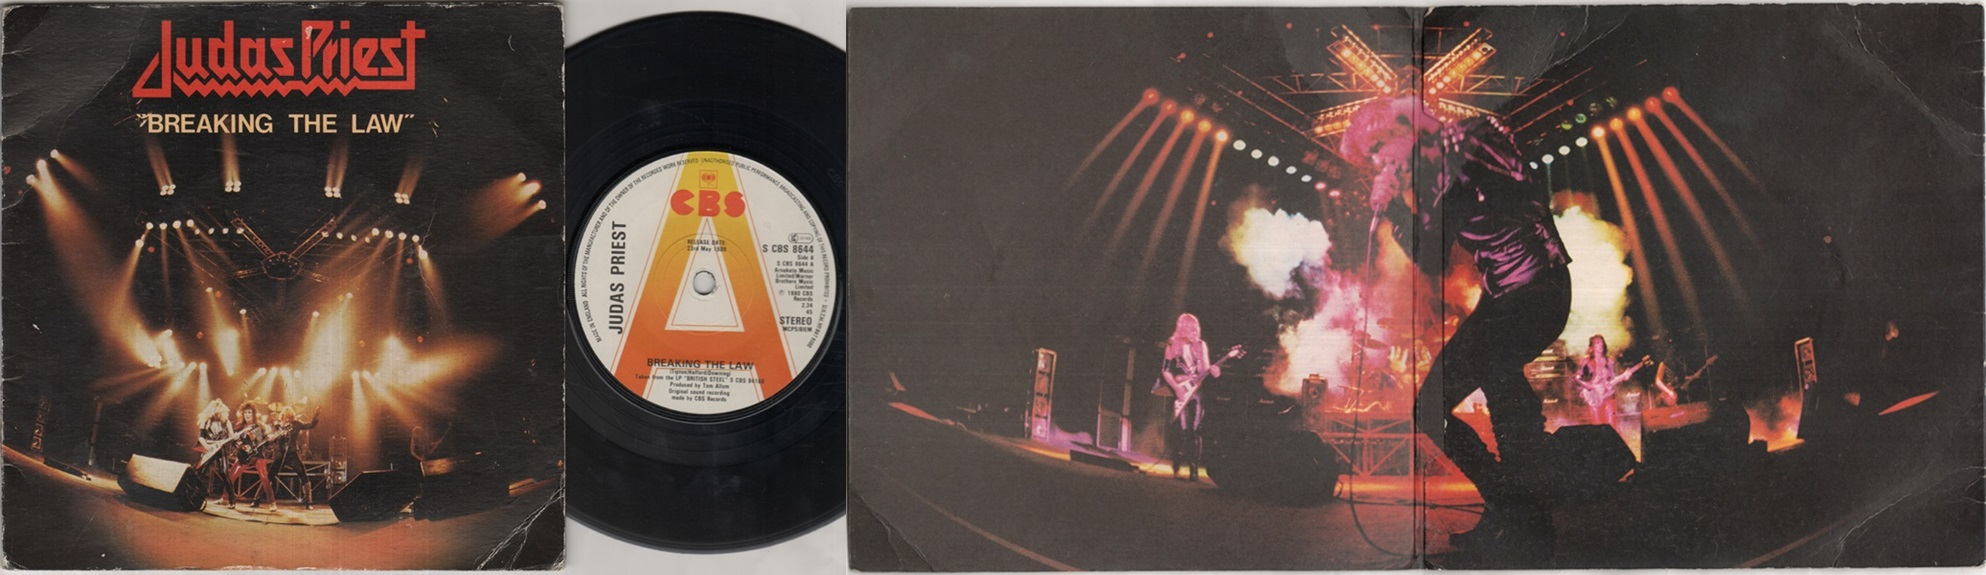 JUDAS PRIEST - Breaking The Law Record